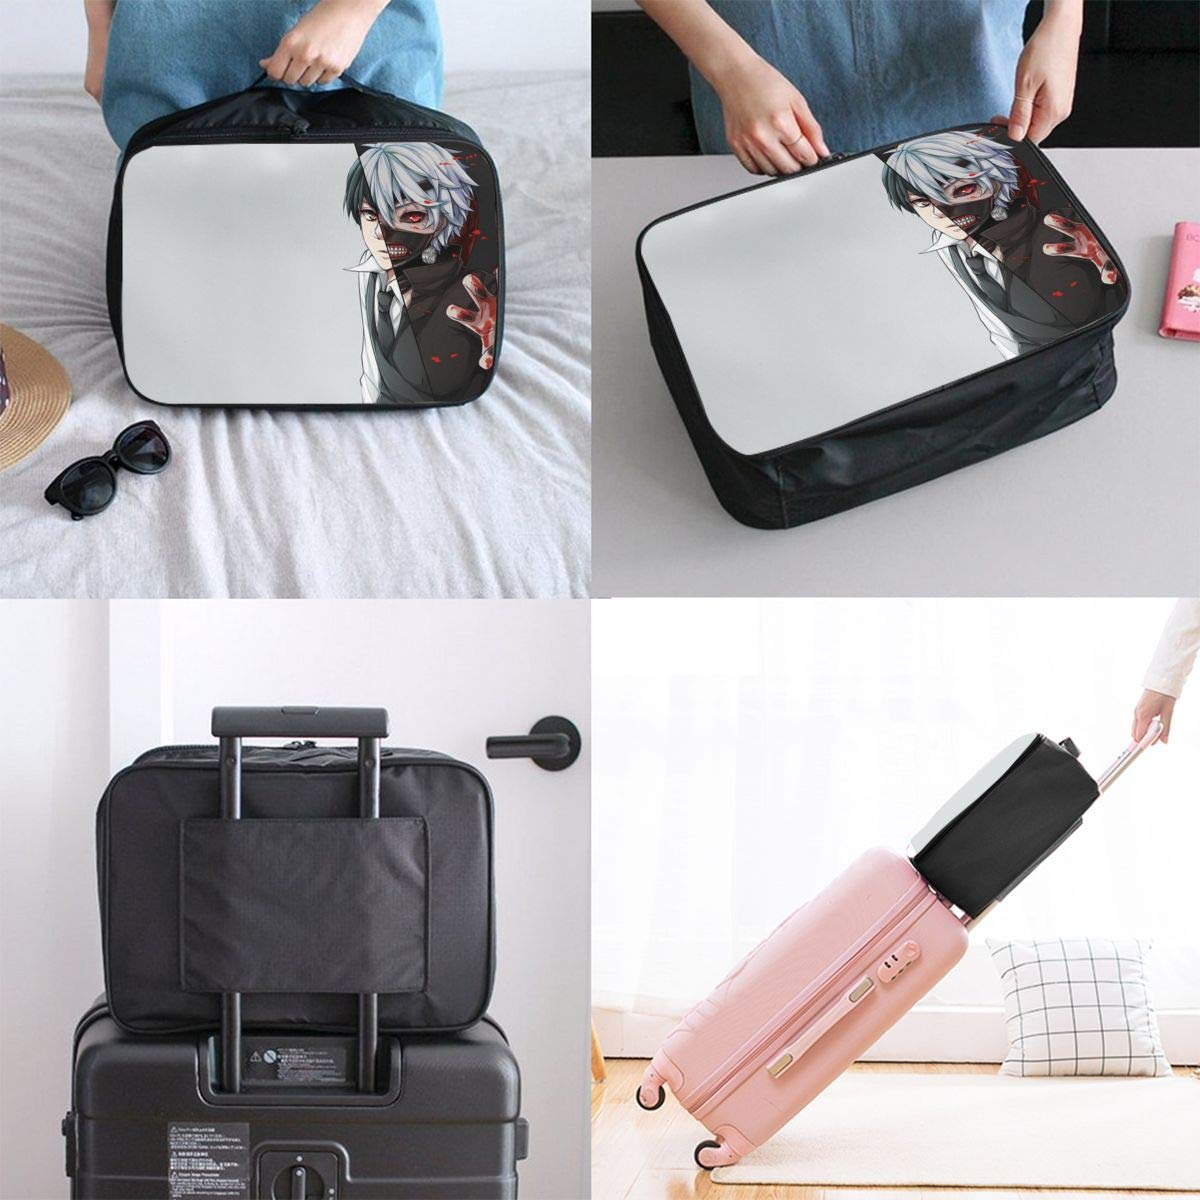 Anime Tokyo Ghoul Customize Casual Portable Travel Bag Suitcase Storage Bag Luggage Packing Tote Bag Trolley Bag